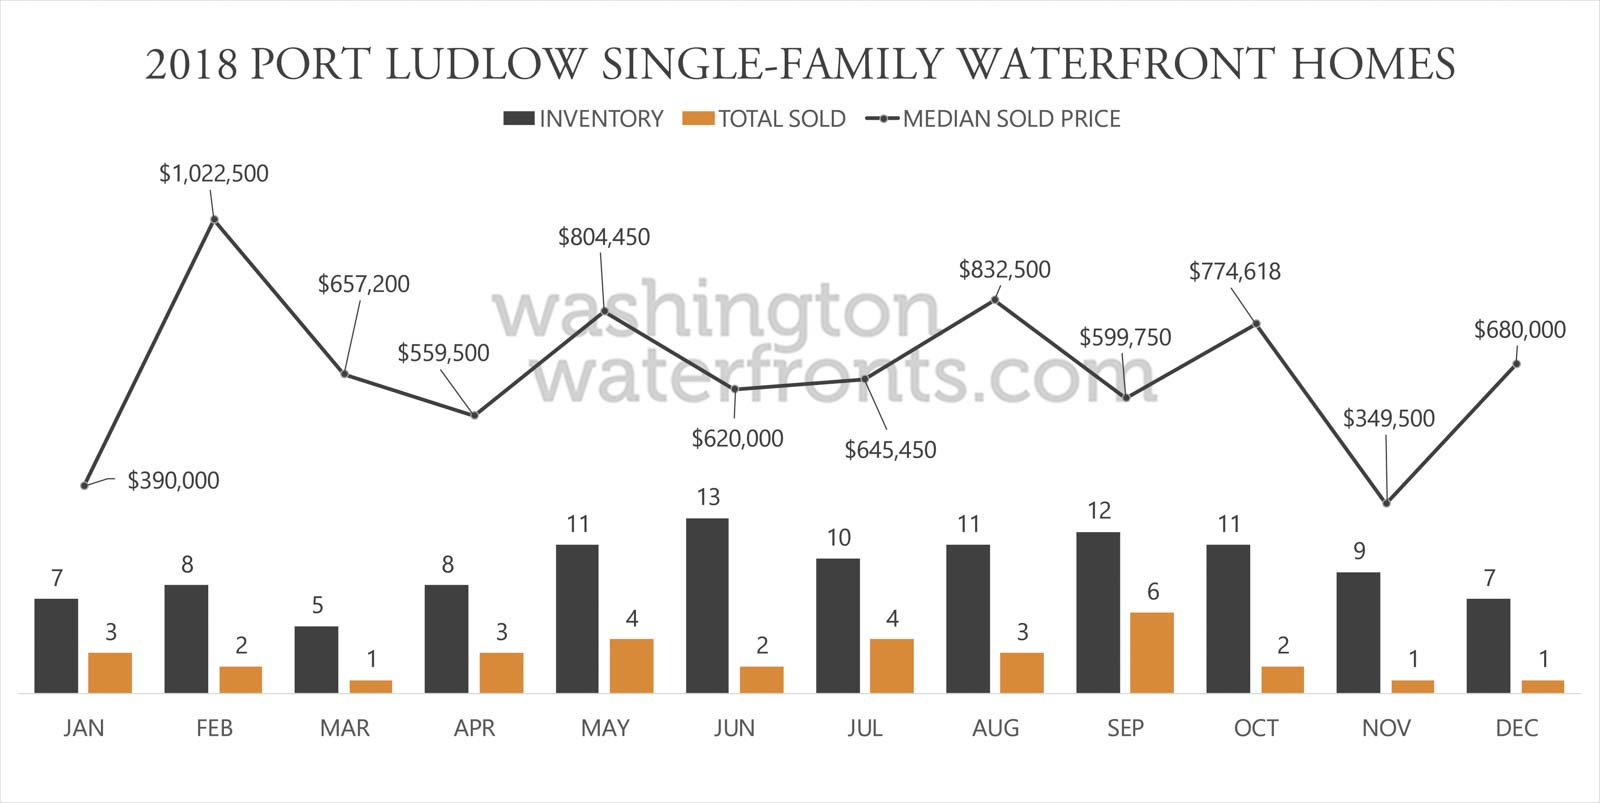 Port Ludlow Waterfront Inventory